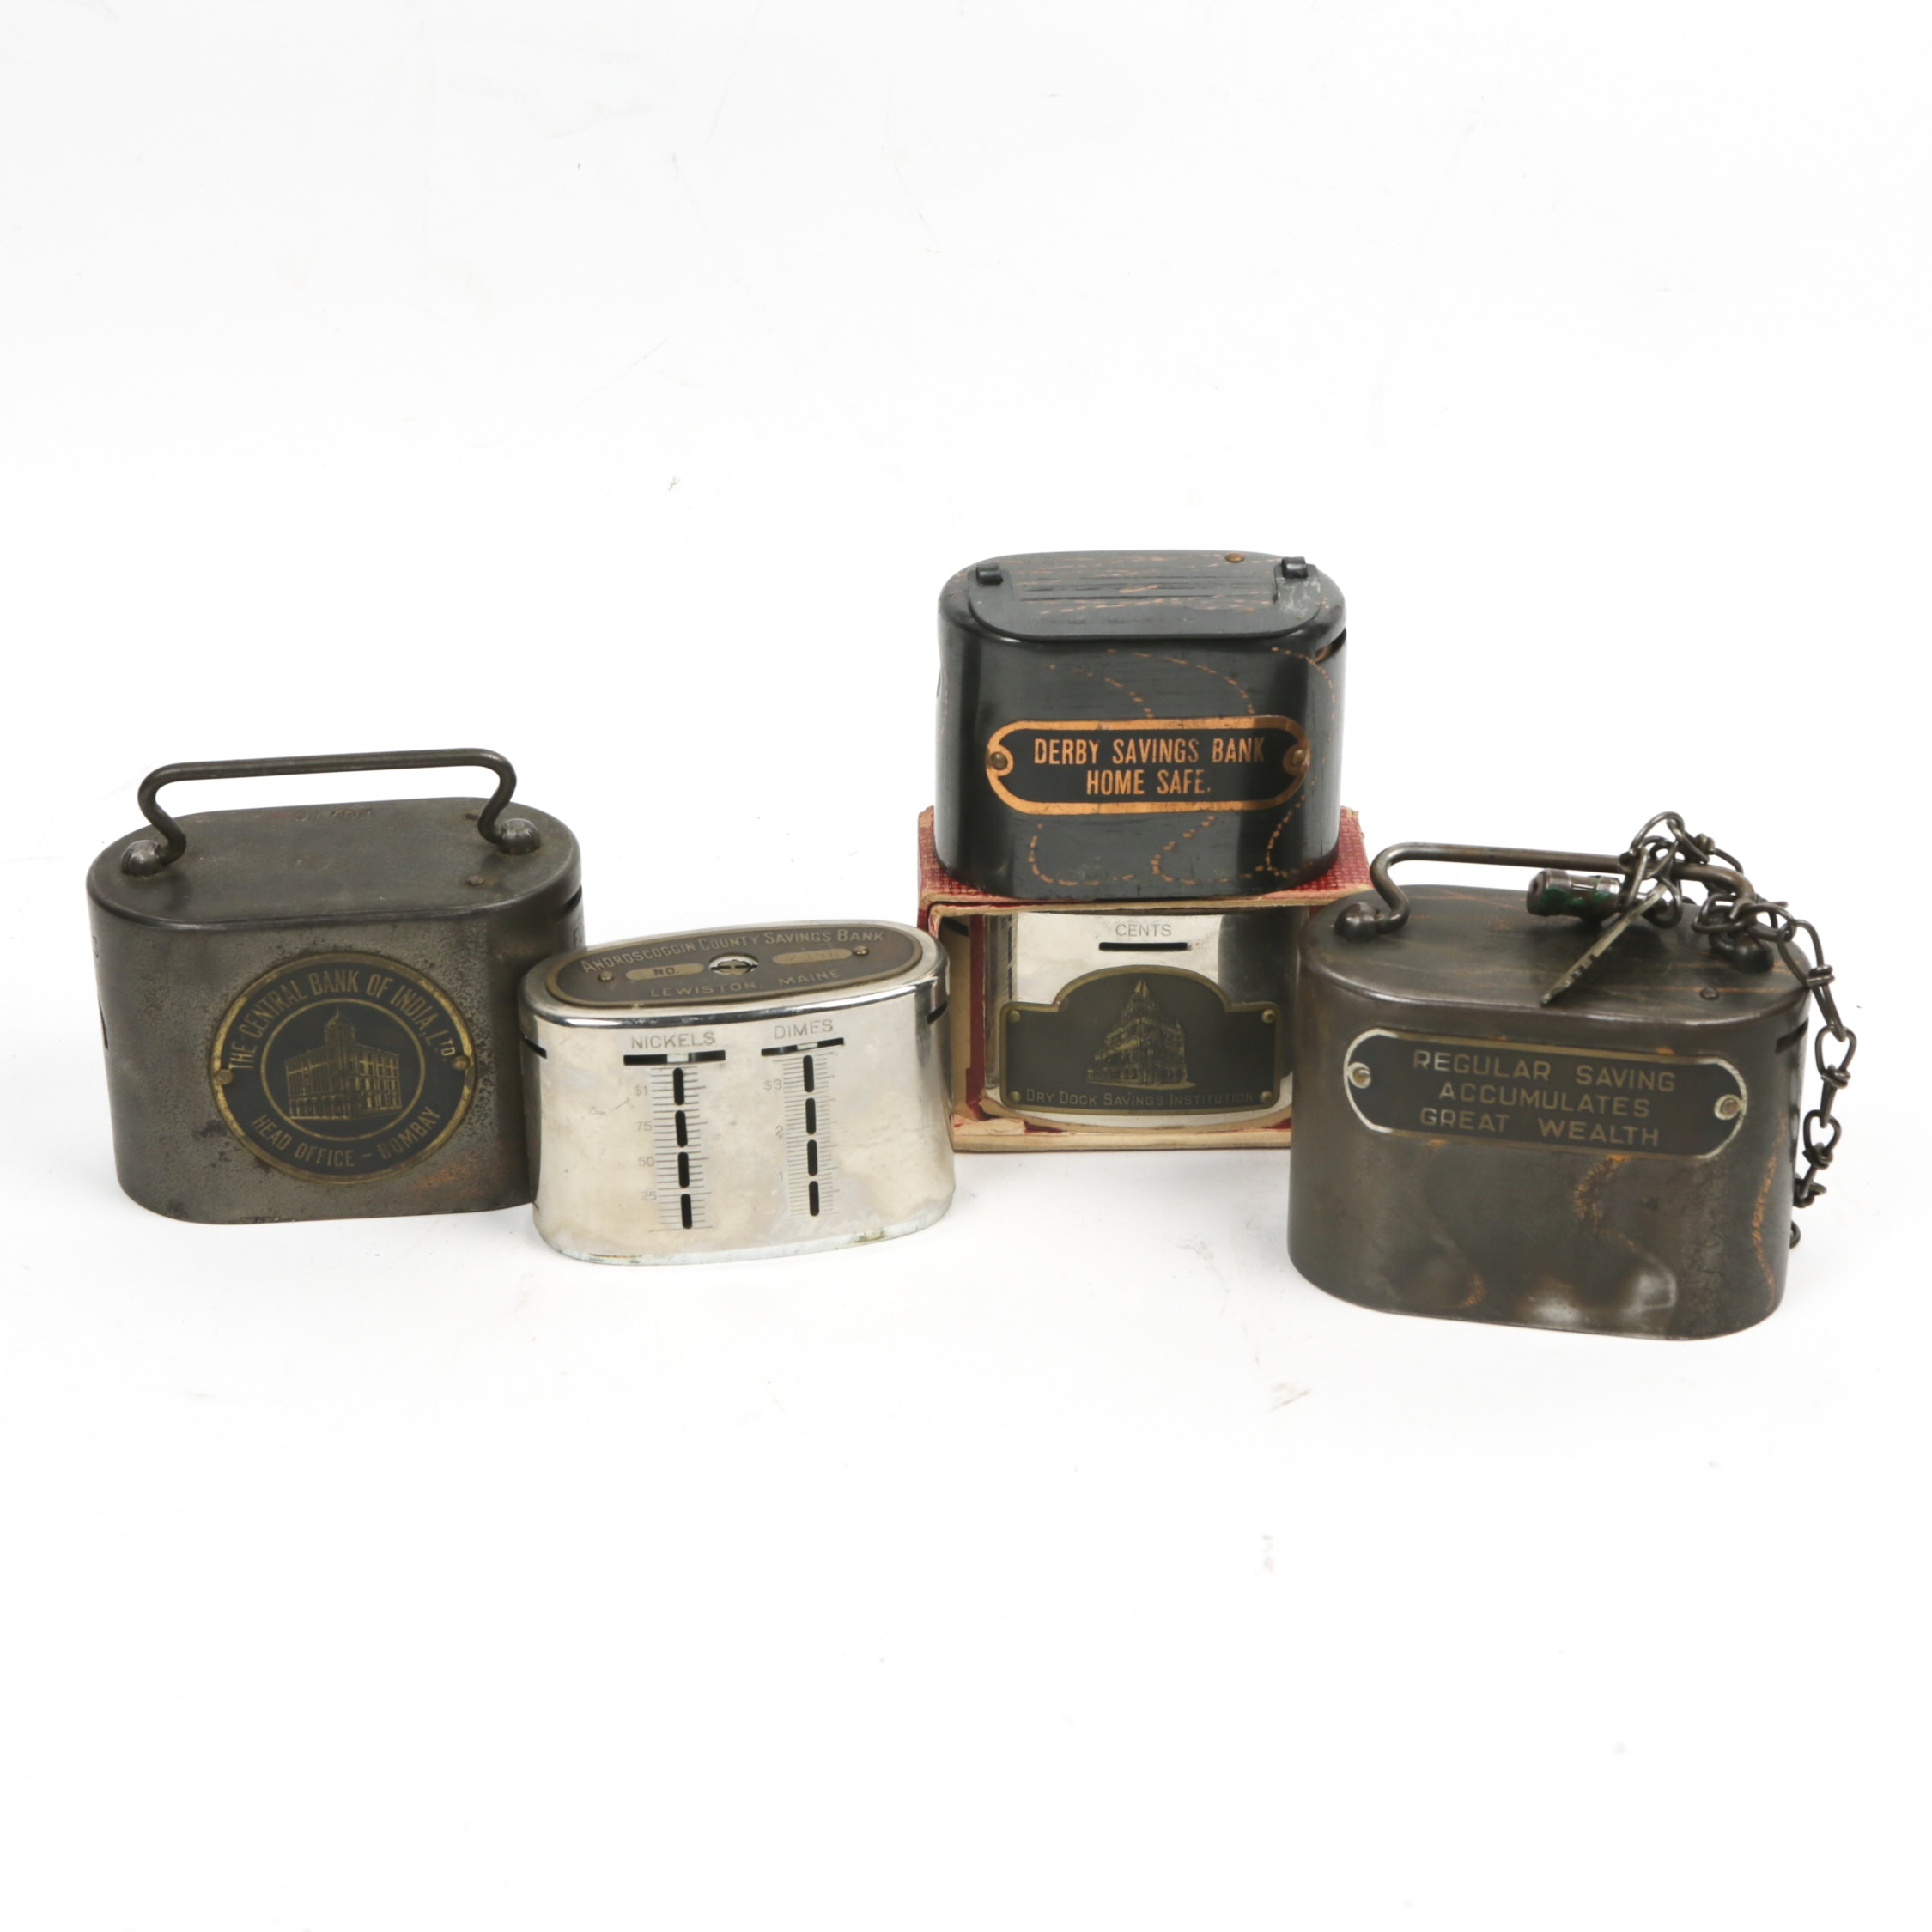 Vintage Metal Advertising Coin Banks, Including The Central Bank of India, Ltd.